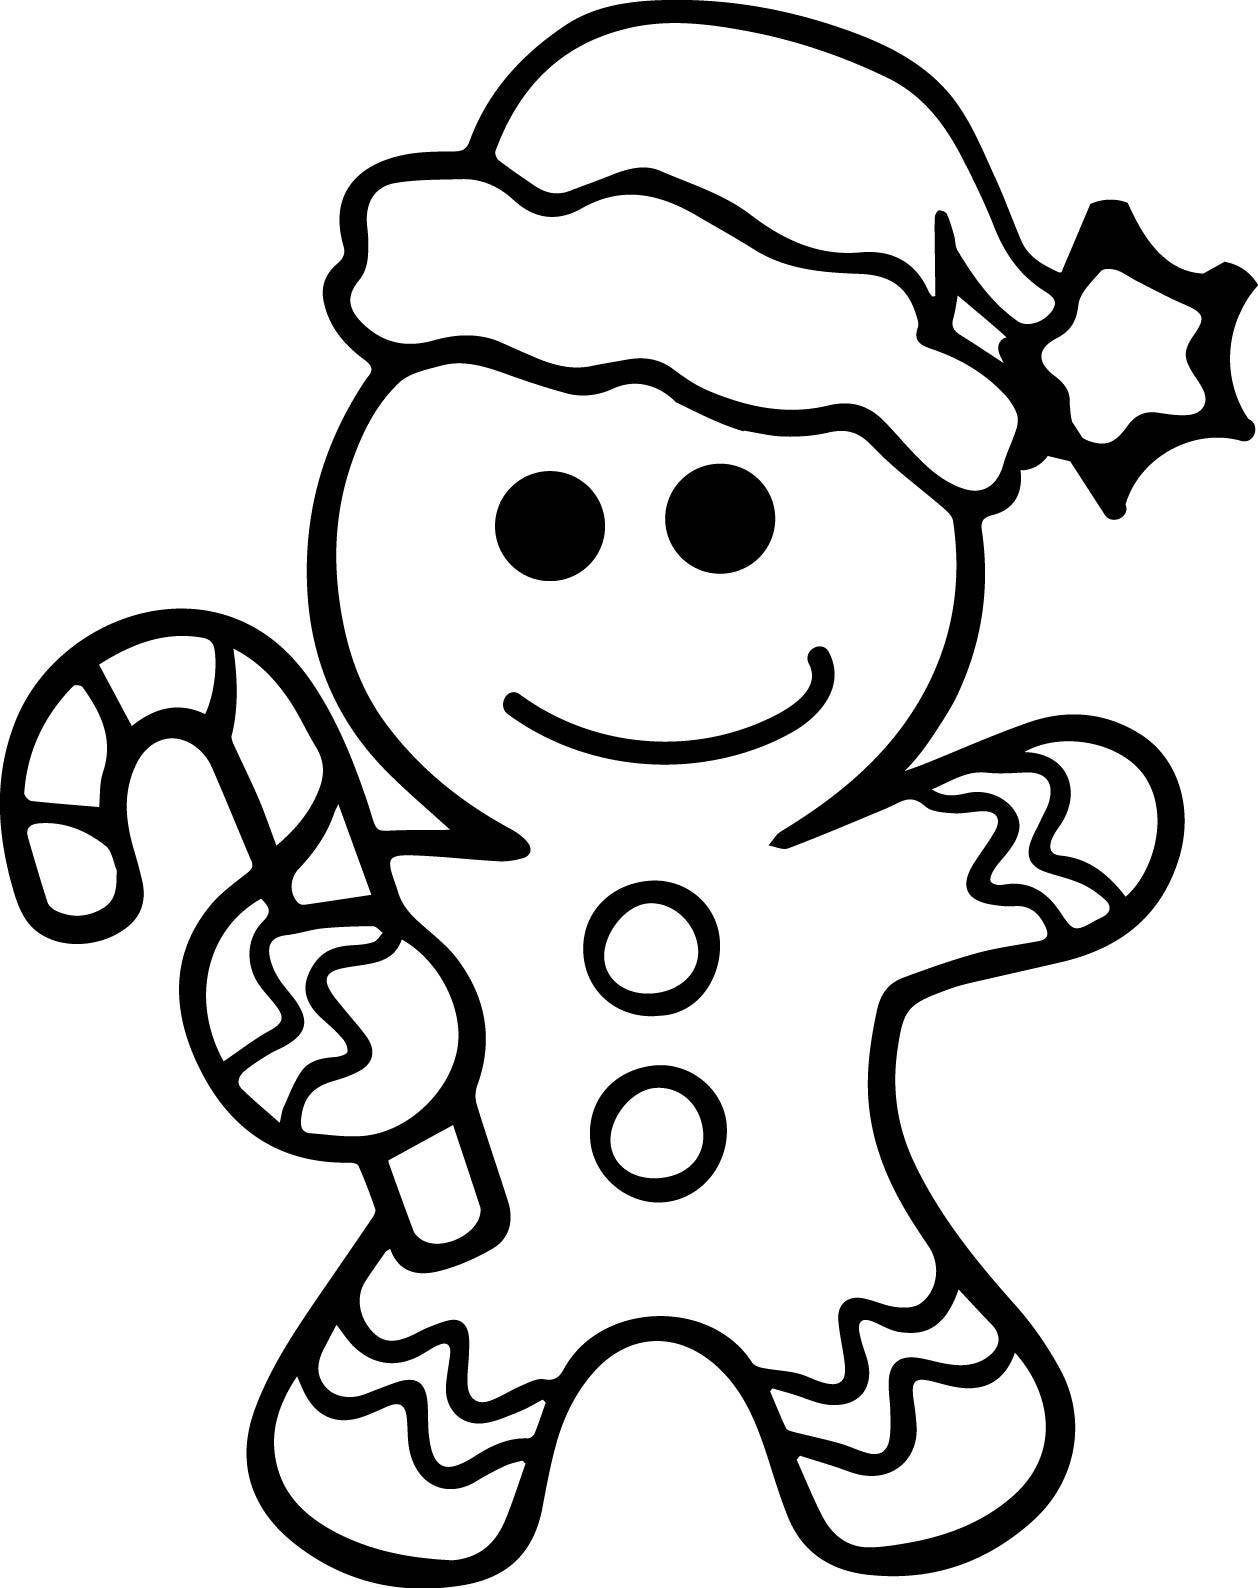 gingerbread colouring pages printable gingerbread house coloring pages for kids gingerbread colouring pages